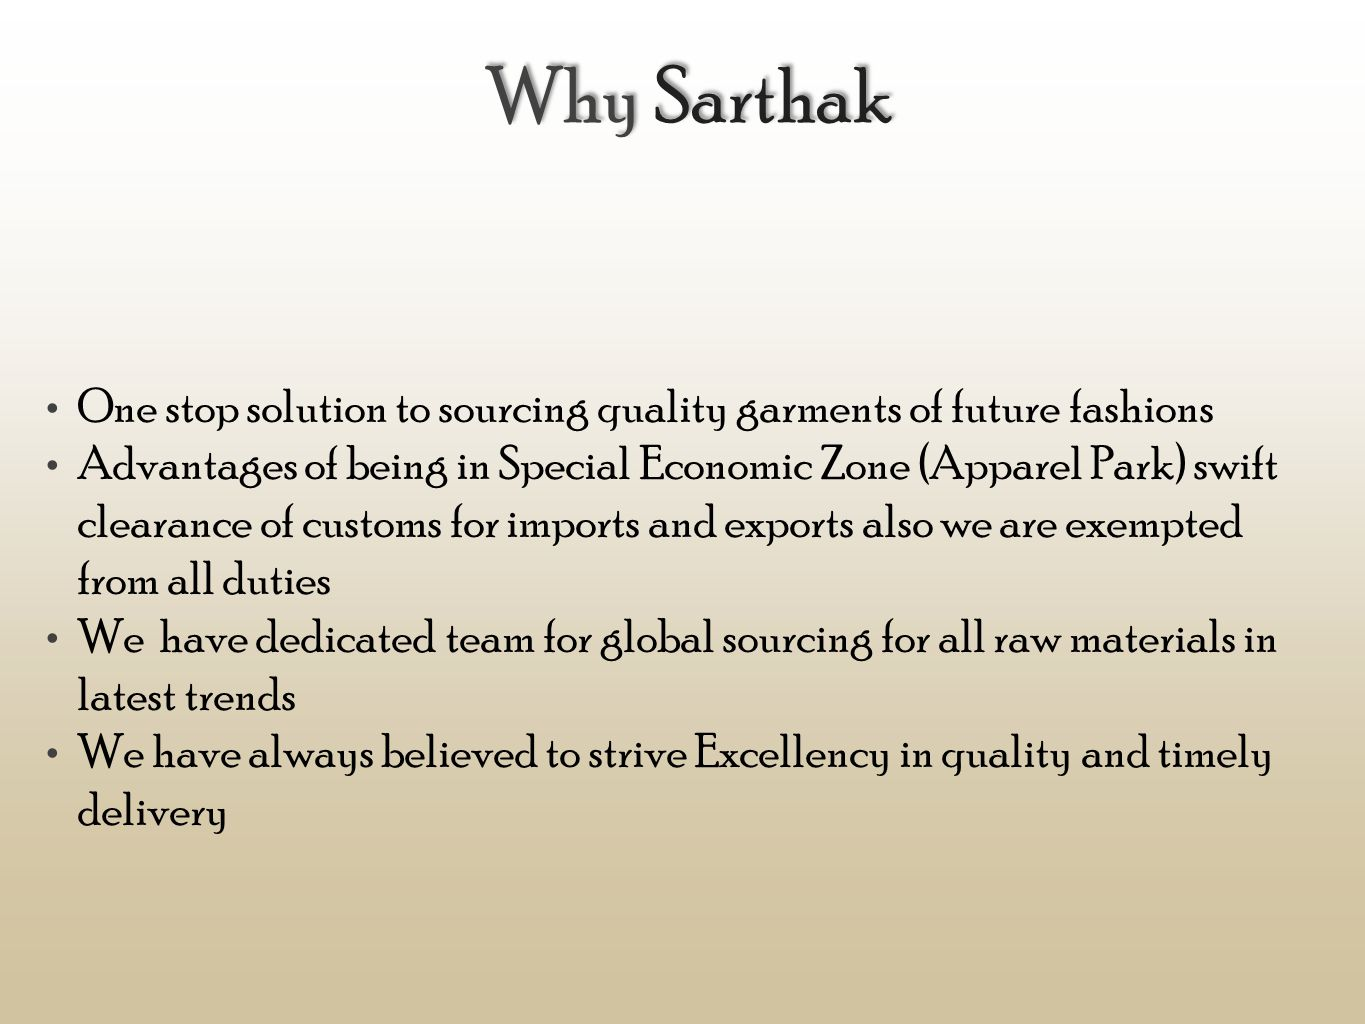 Why Sarthak One stop solution to sourcing quality garments of future fashions Advantages of being in Special Economic Zone (Apparel Park) swift clearance of customs for imports and exports also we are exempted from all duties We have dedicated team for global sourcing for all raw materials in latest trends We have always believed to strive Excellency in quality and timely delivery